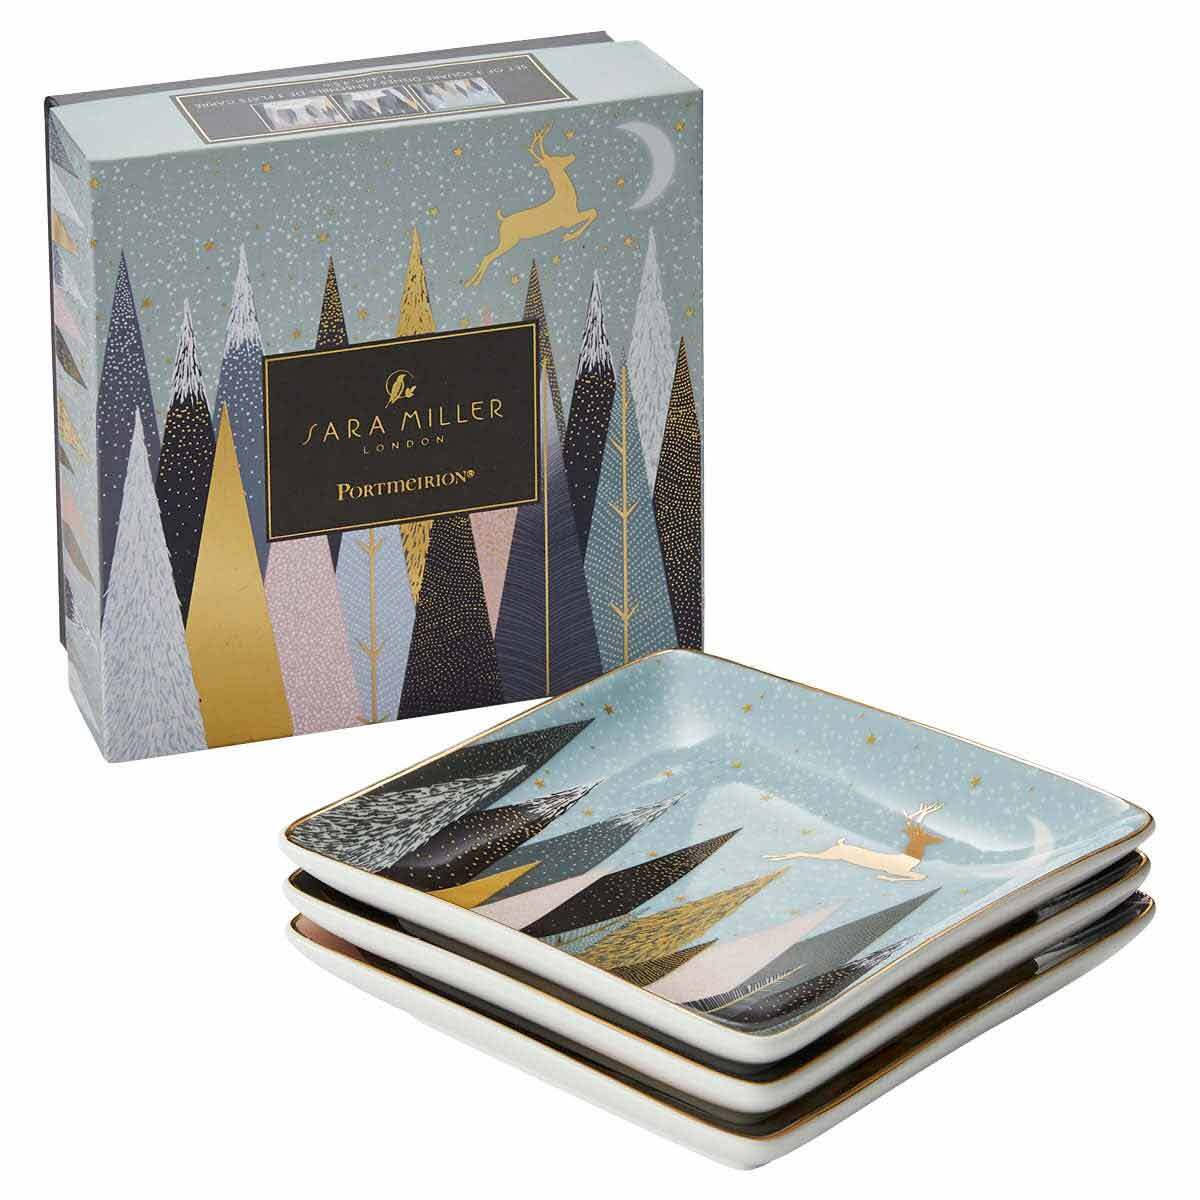 Sara Miller London for Portmeirion Frosted Pines Set of 3 Square Trays 4.5 Inch image number 4